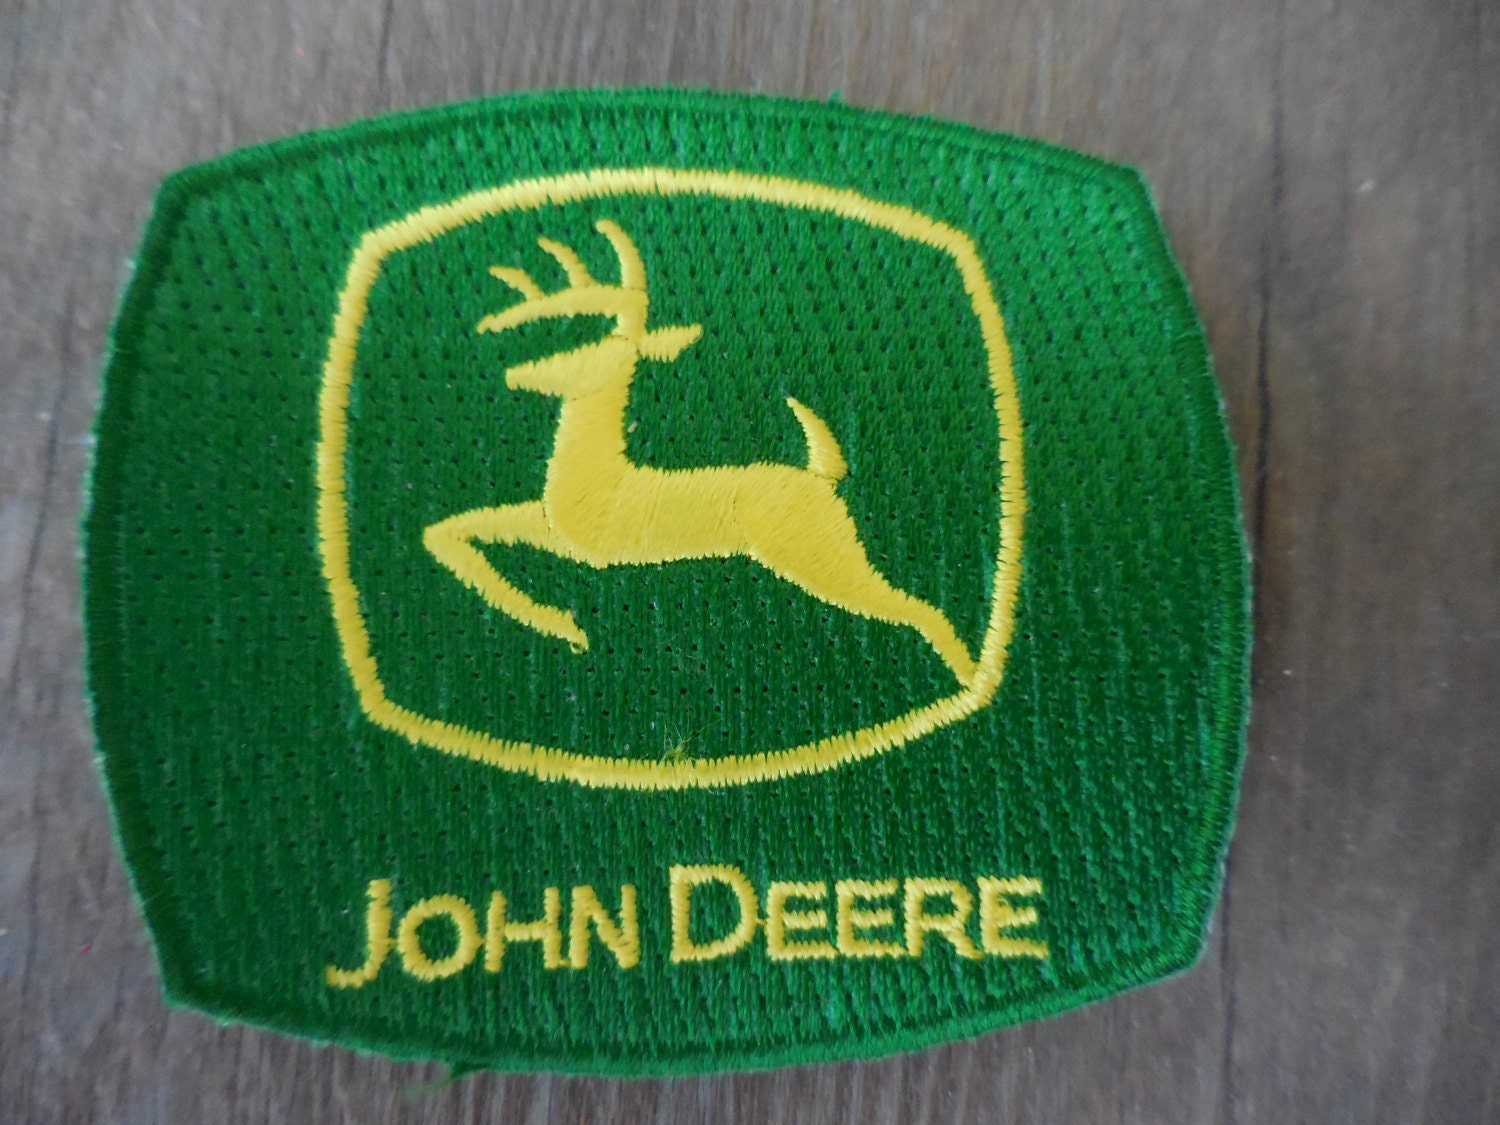 John Deere Rug john deere sew on/iron on patch small green and yellow sewing